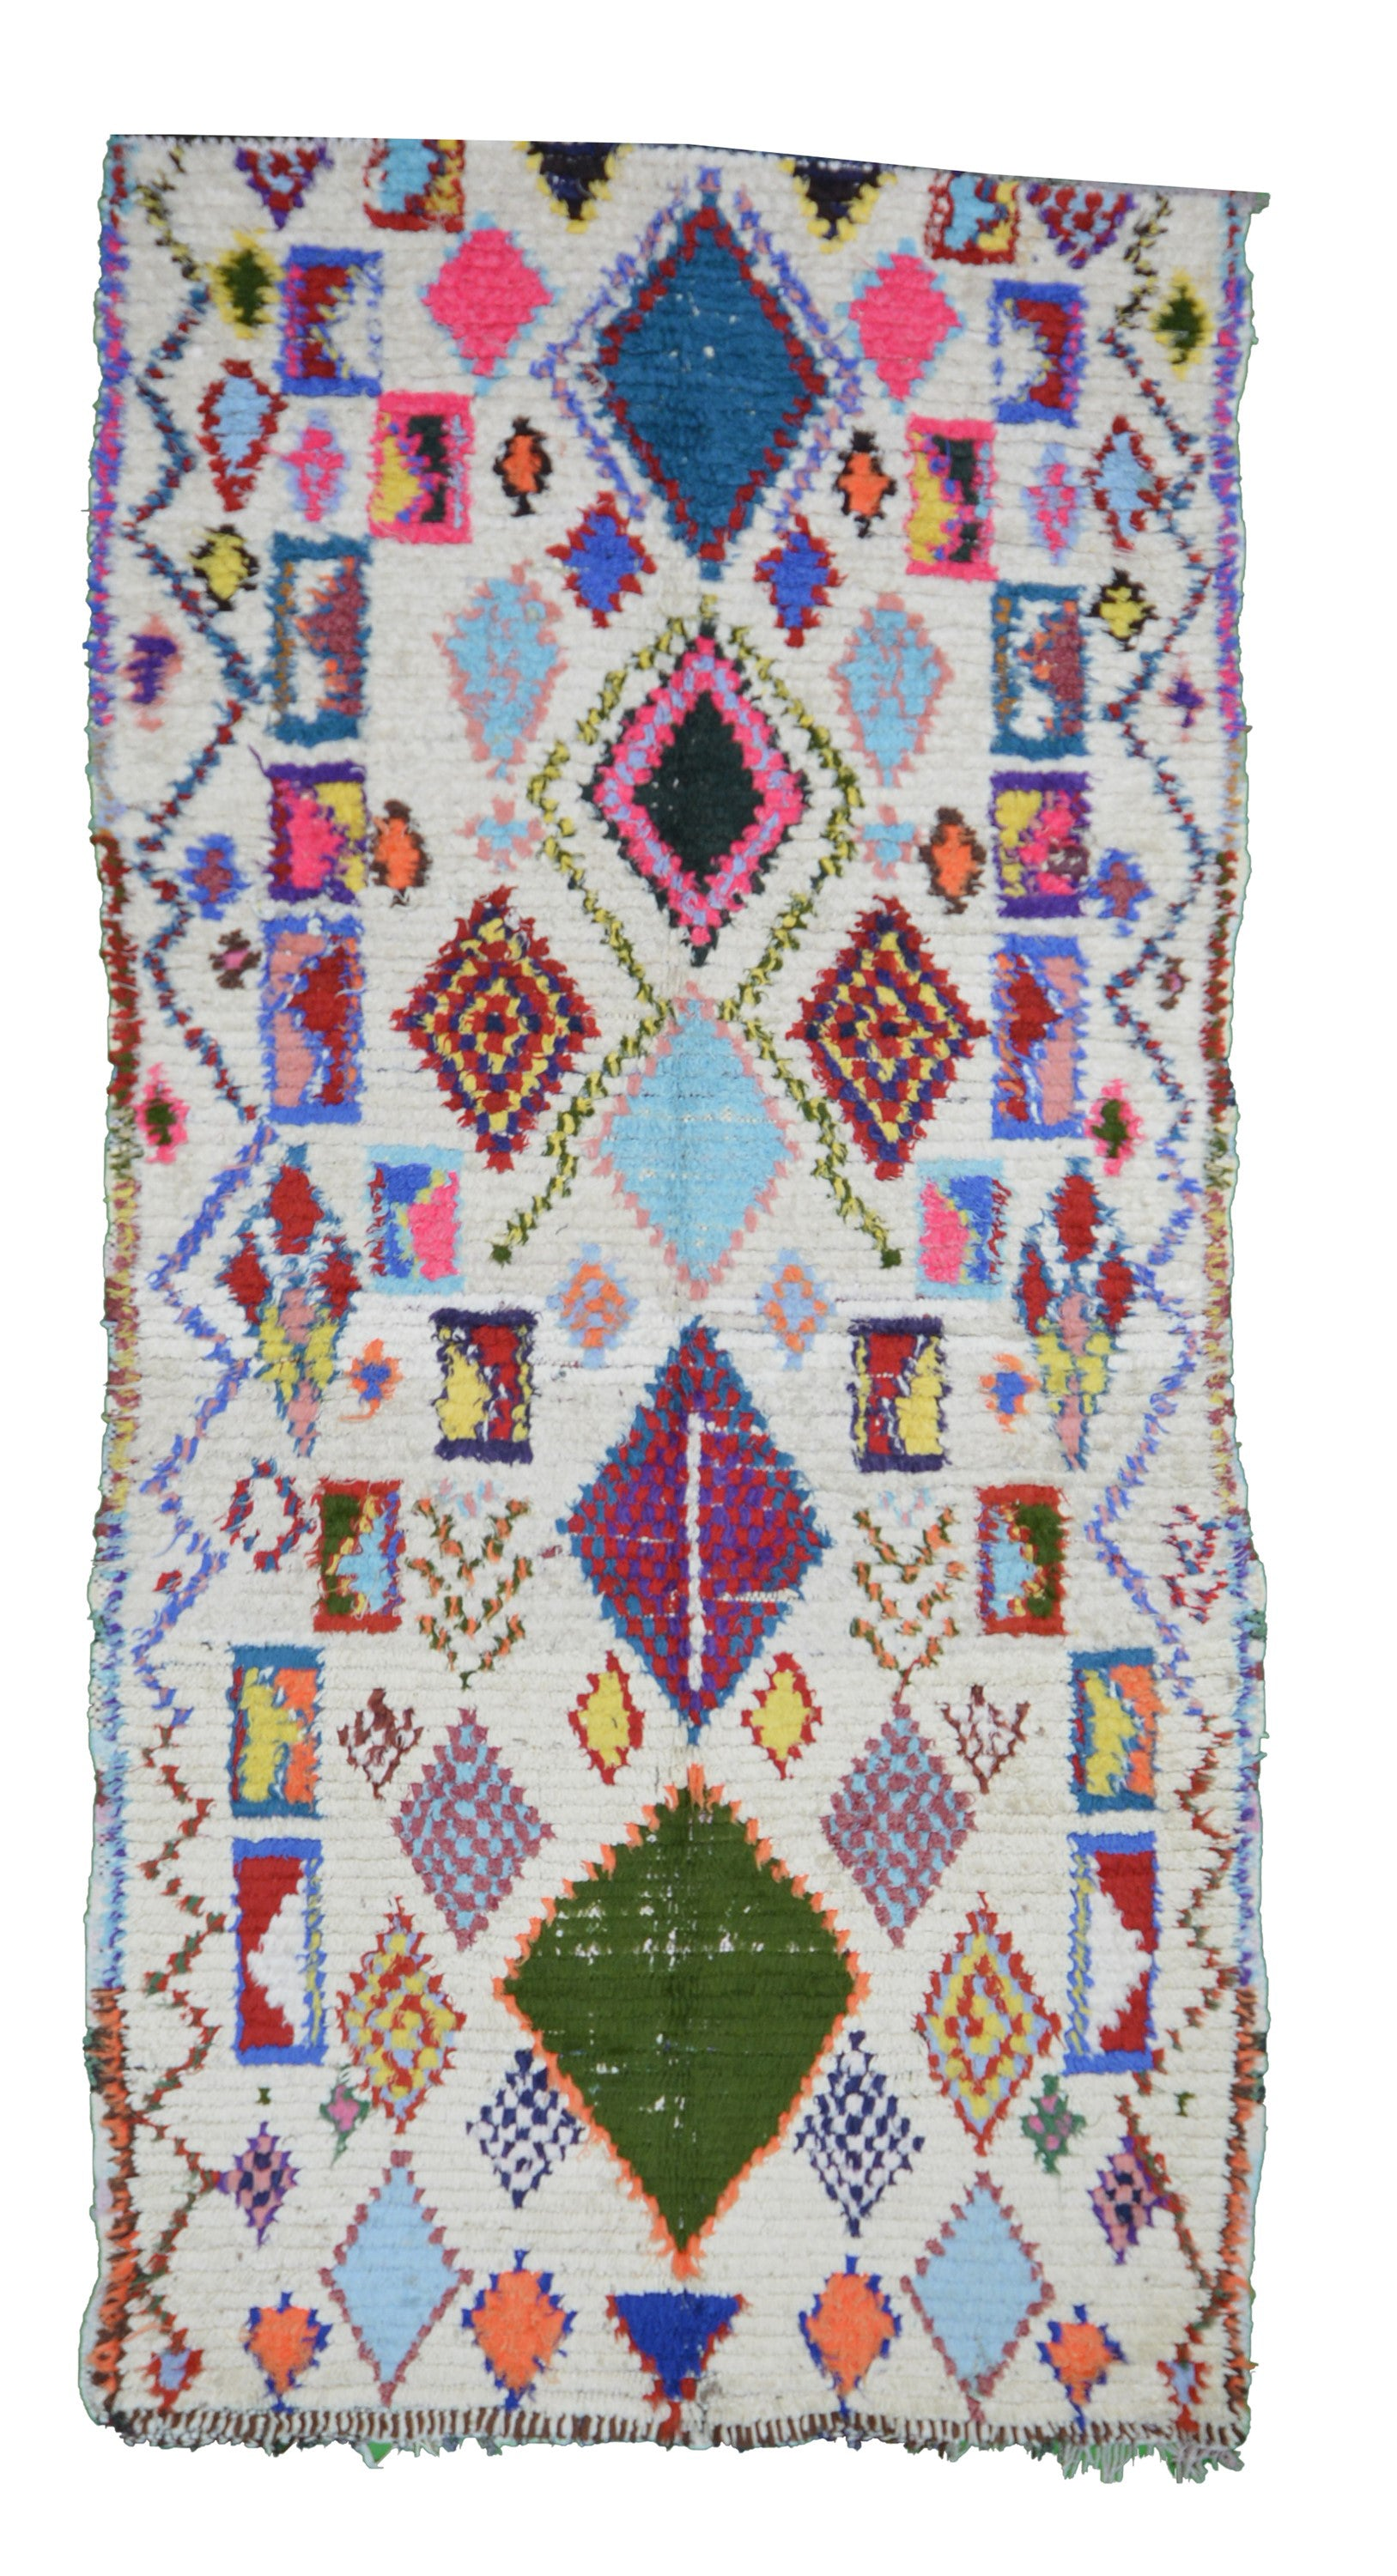 Handmade rugs, carpet culture rug, nyc rugs, cheap rugs, area rug, moroccan rugs, shag rugs, new rugs